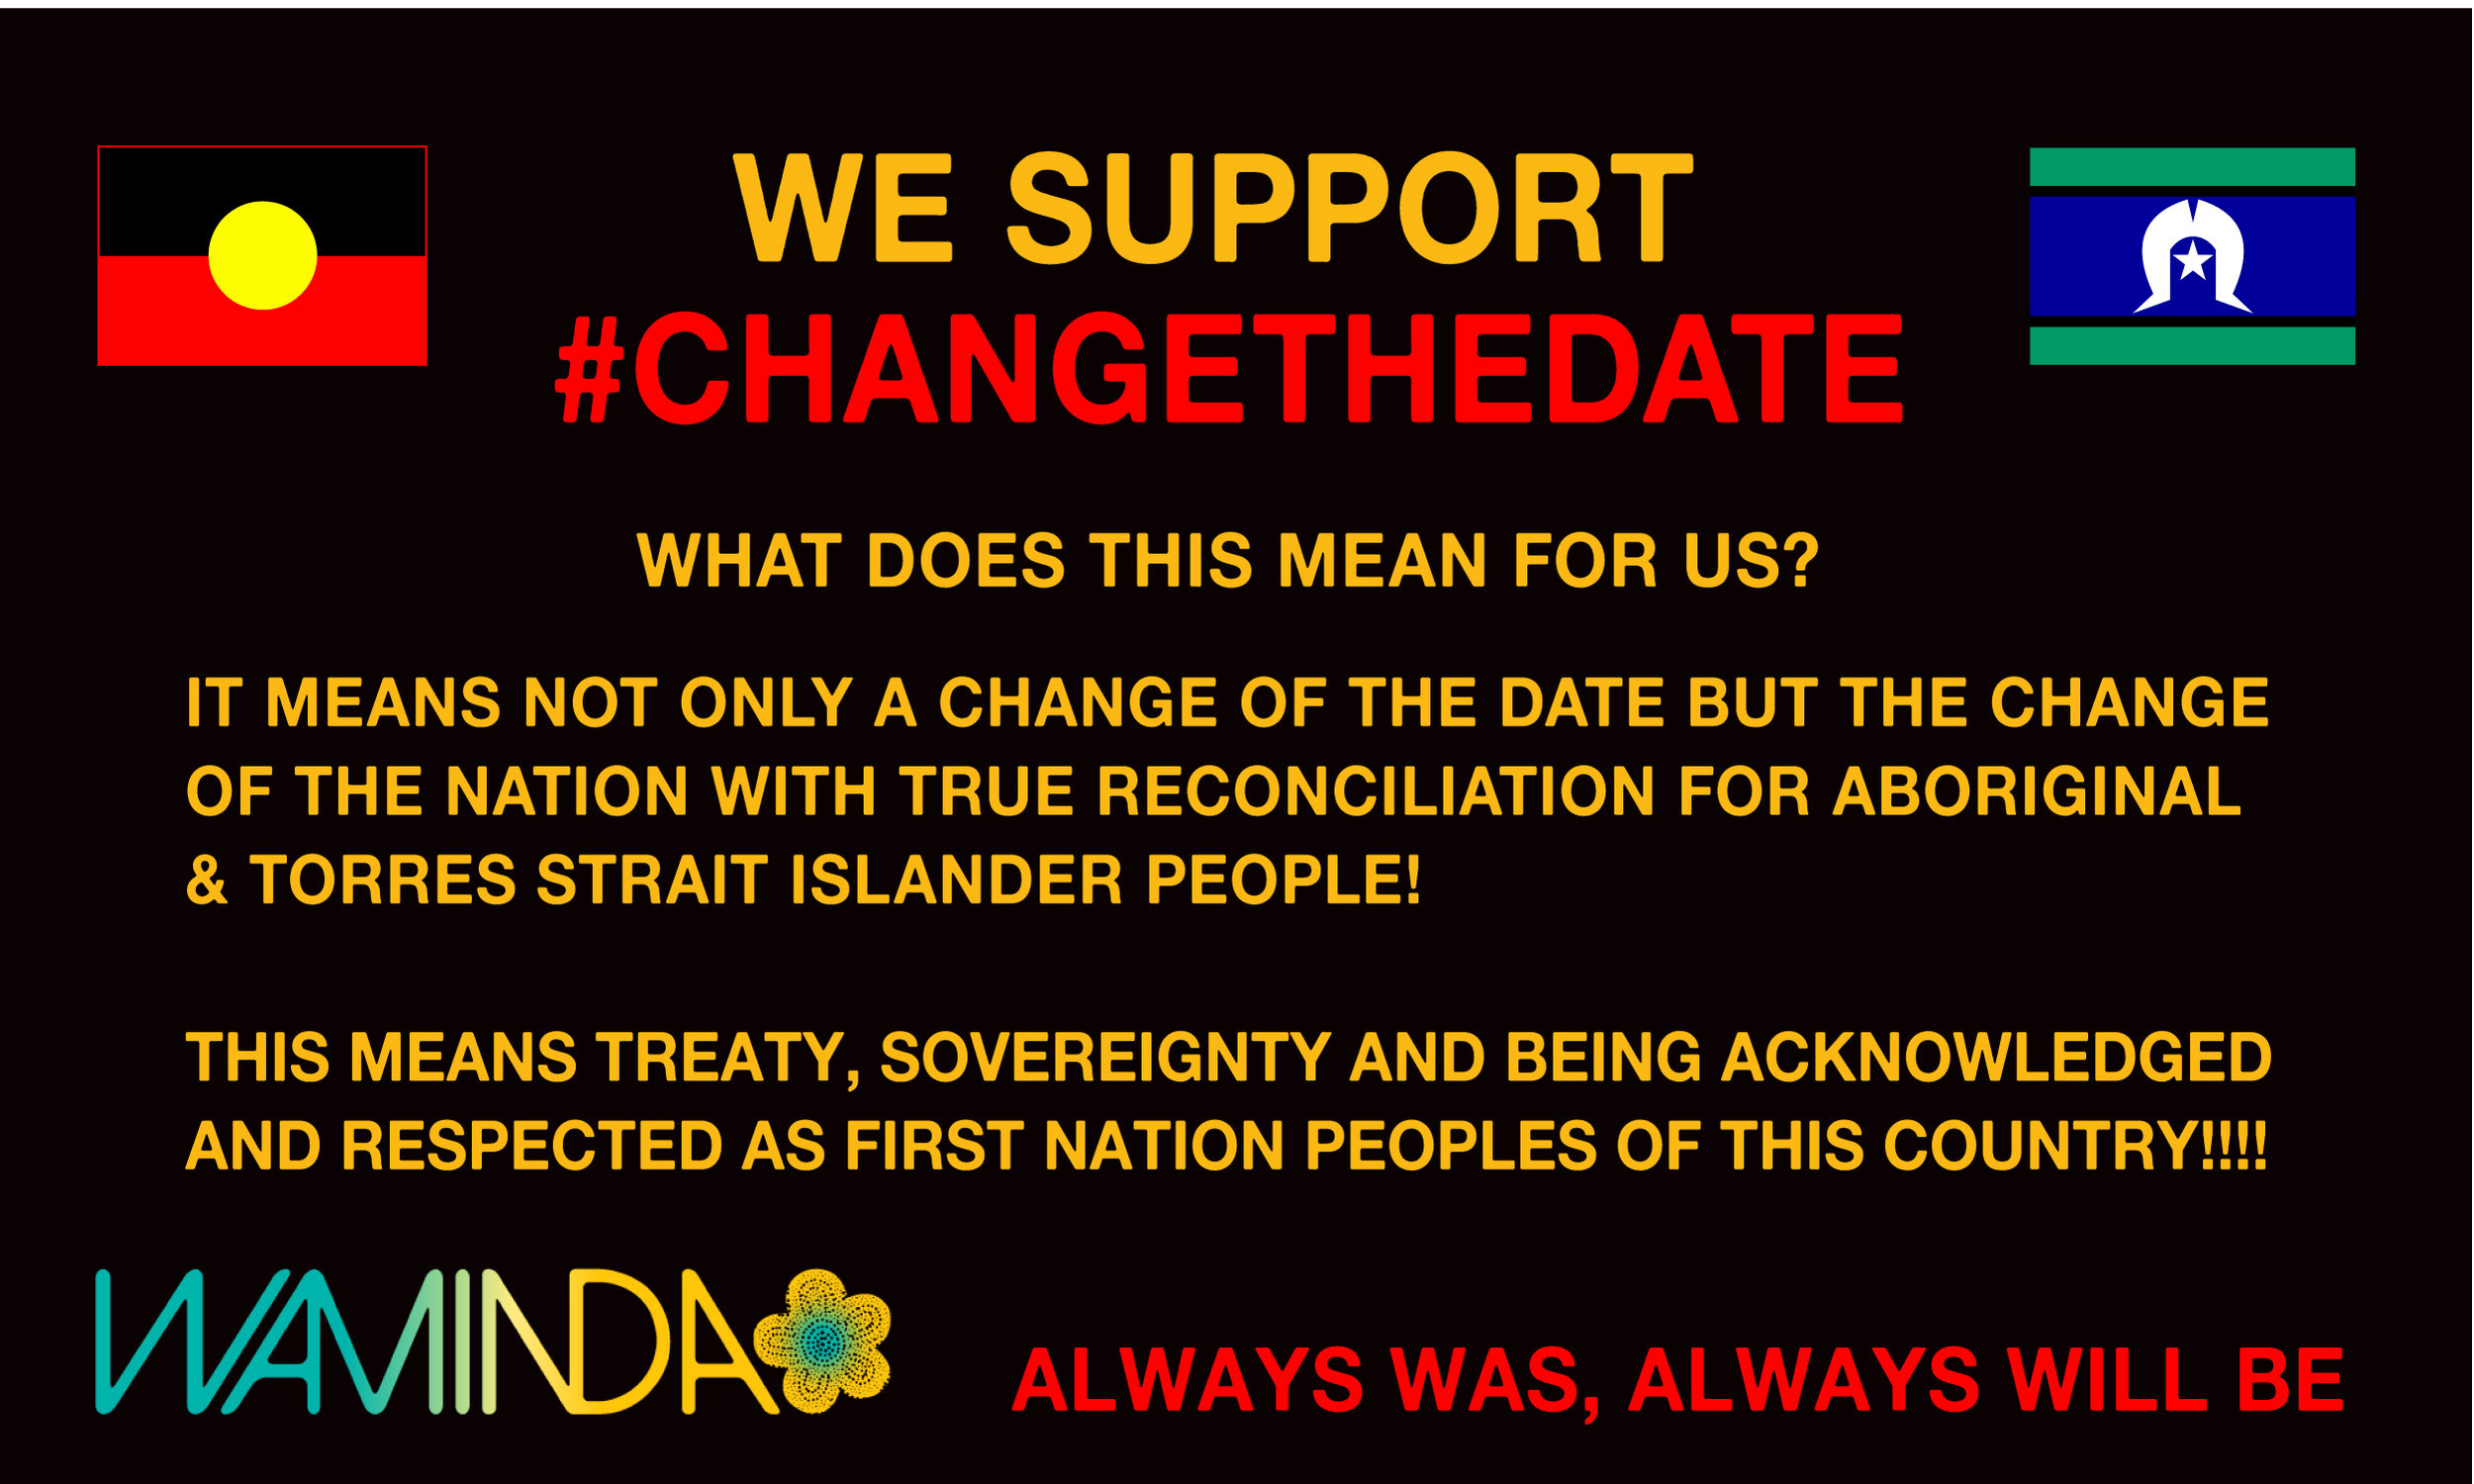 Change the date artwork website banner 1.jpg